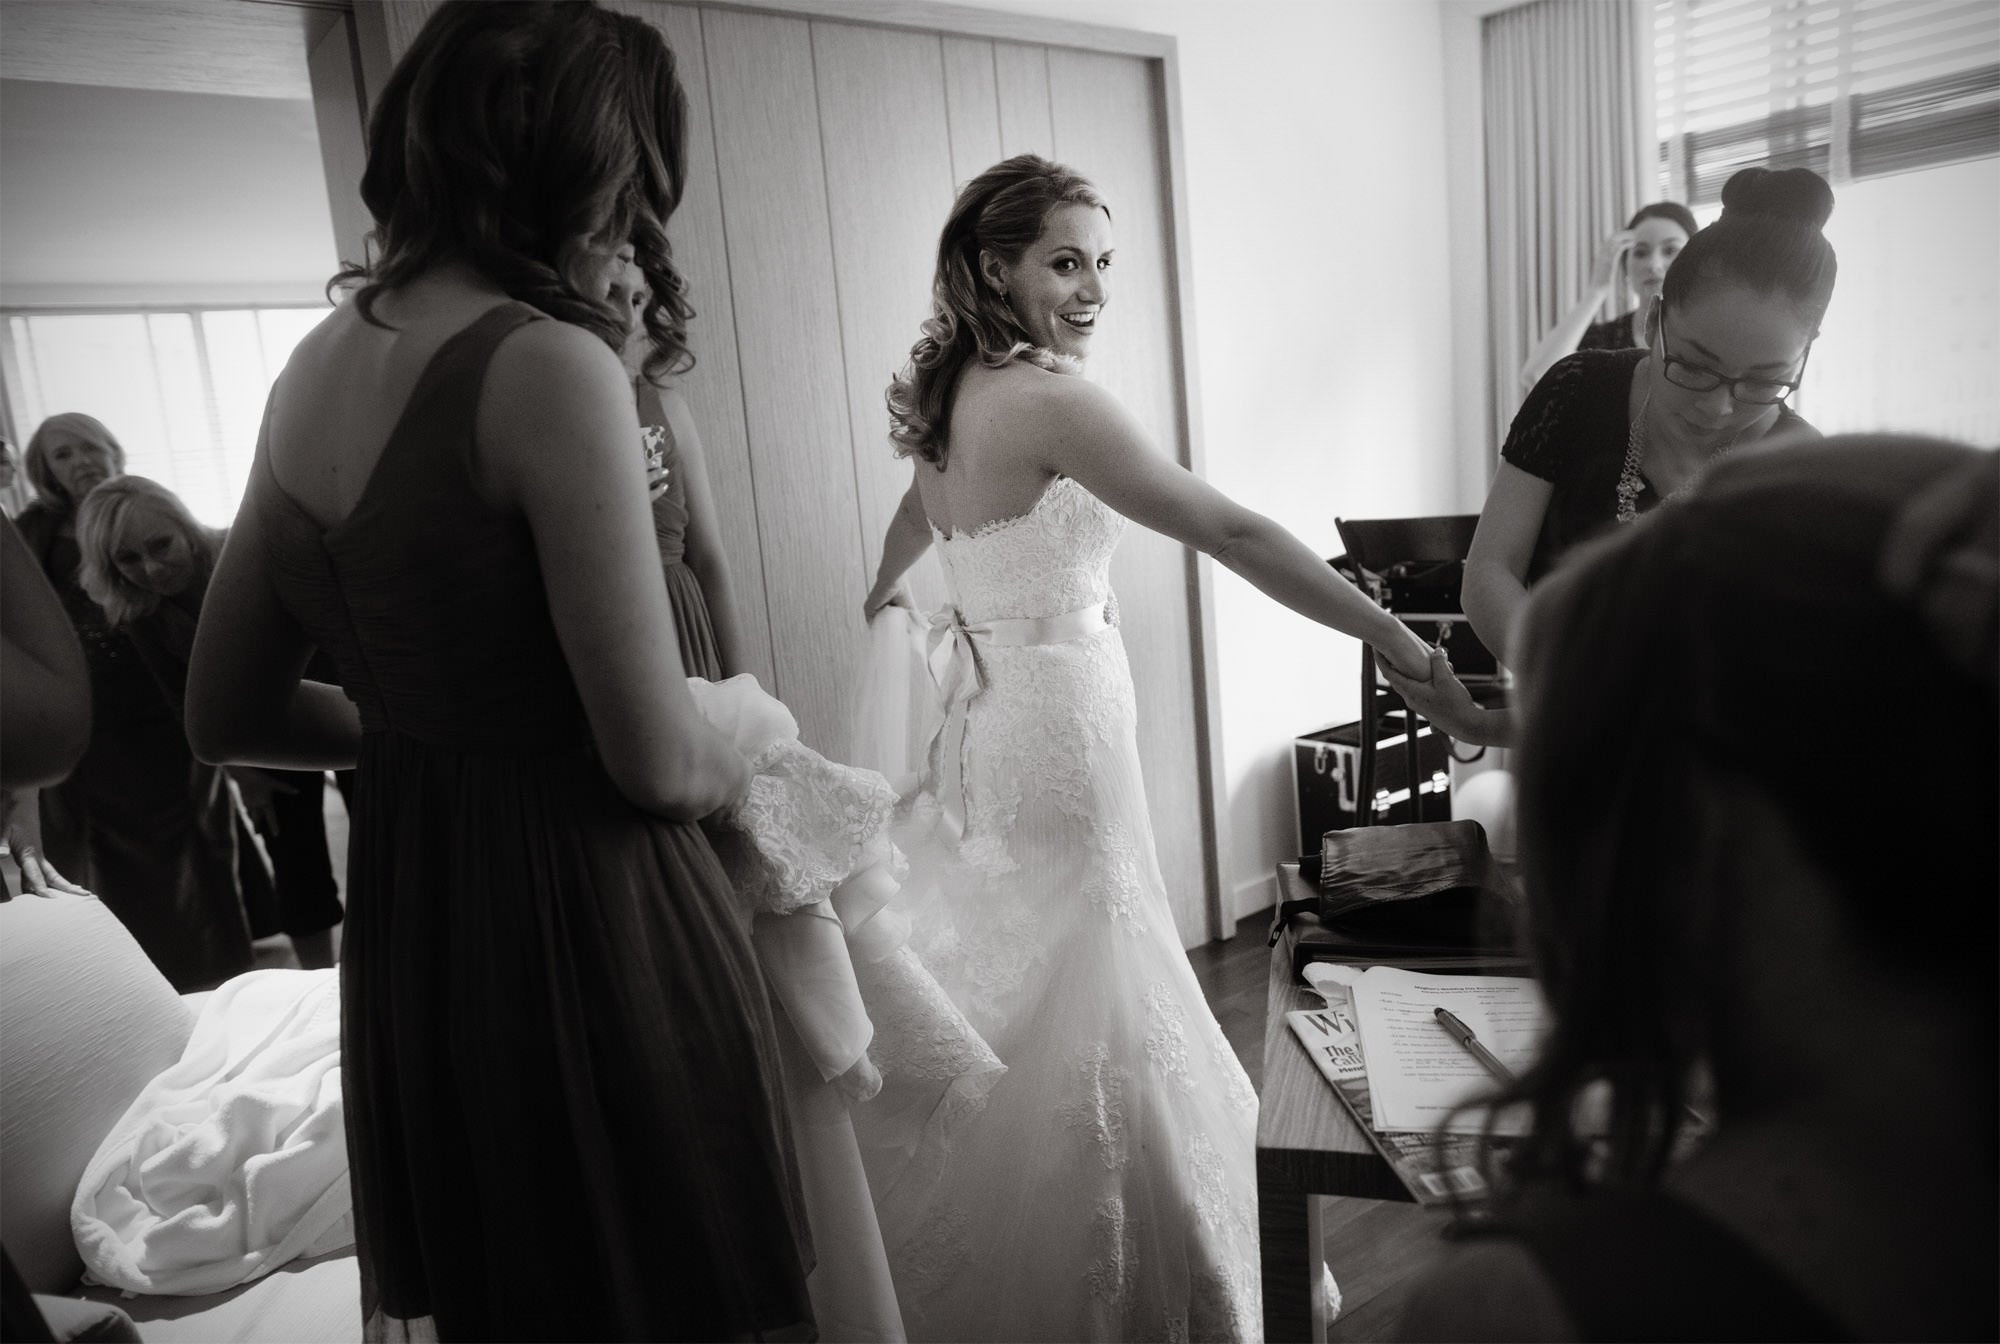 The bride puts on her wedding dress before the ceremony at Park Hyatt Washington DC.